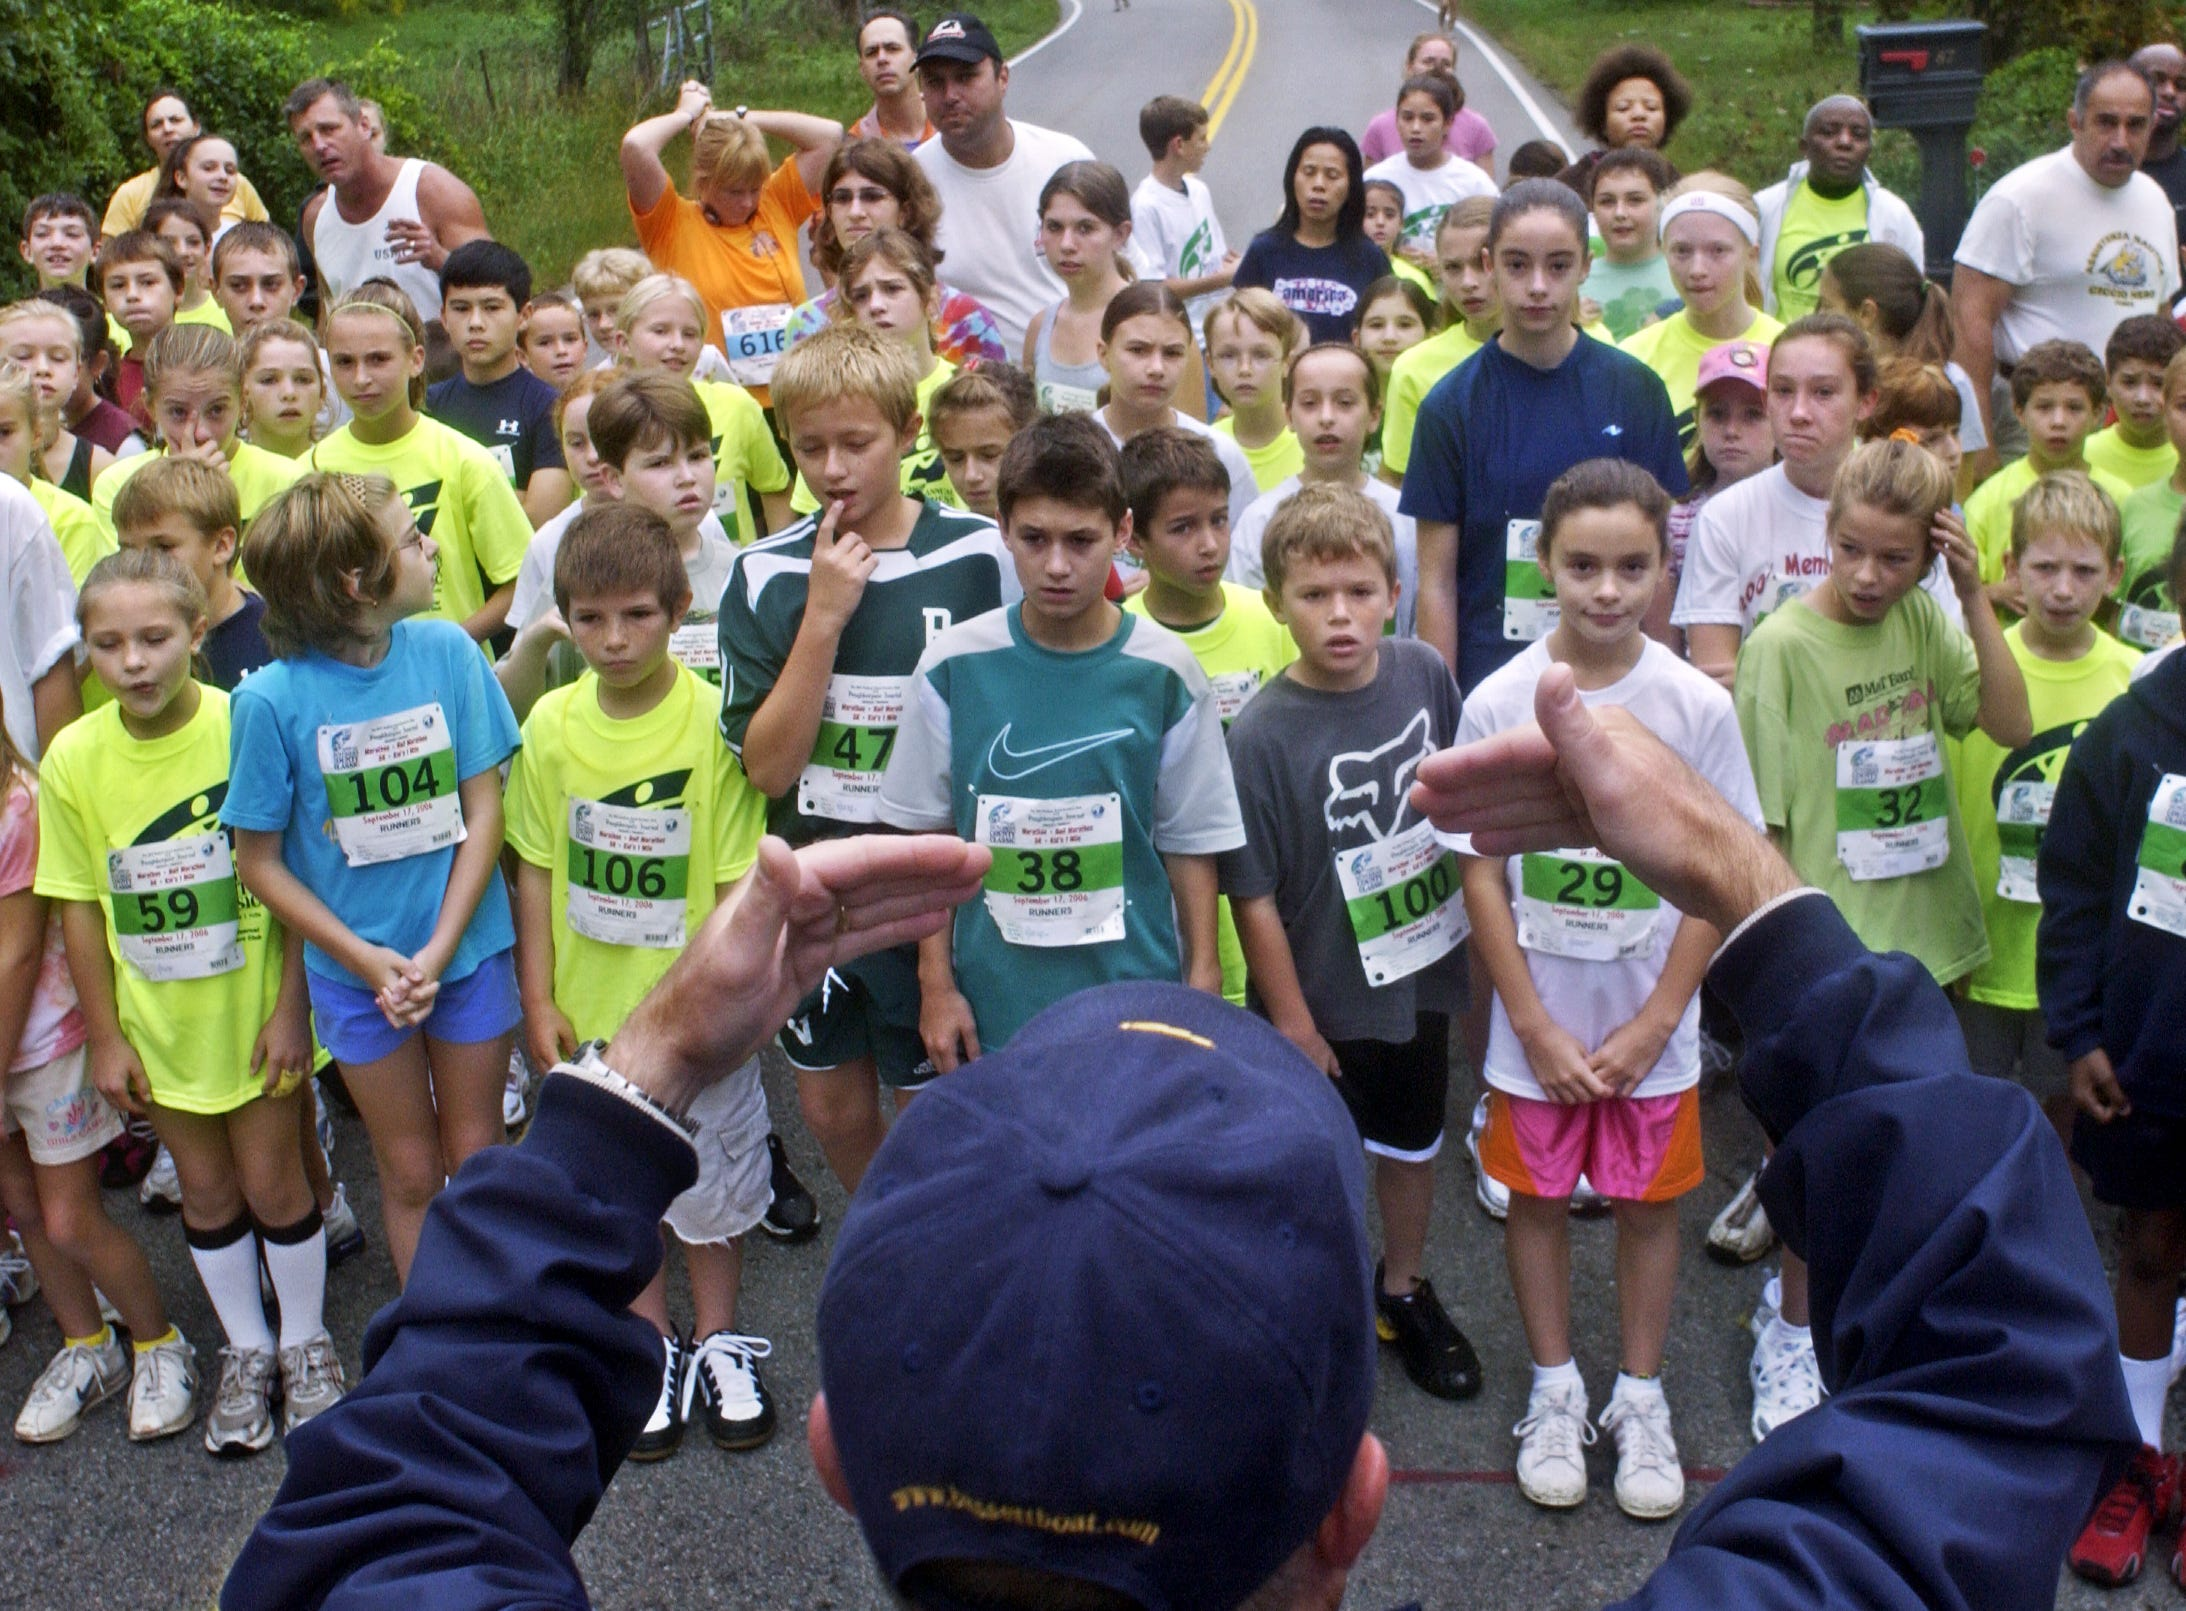 Rich Hansen of Pleasant Valley, facing away from the camera at bottom of frame, gives directions to the kids before the start of the 1-mile kid's race of the Dutchess County Classic road race Sunday, Sept. 17, 2006, at Robinson Lane Recreational Park in Wappinger.